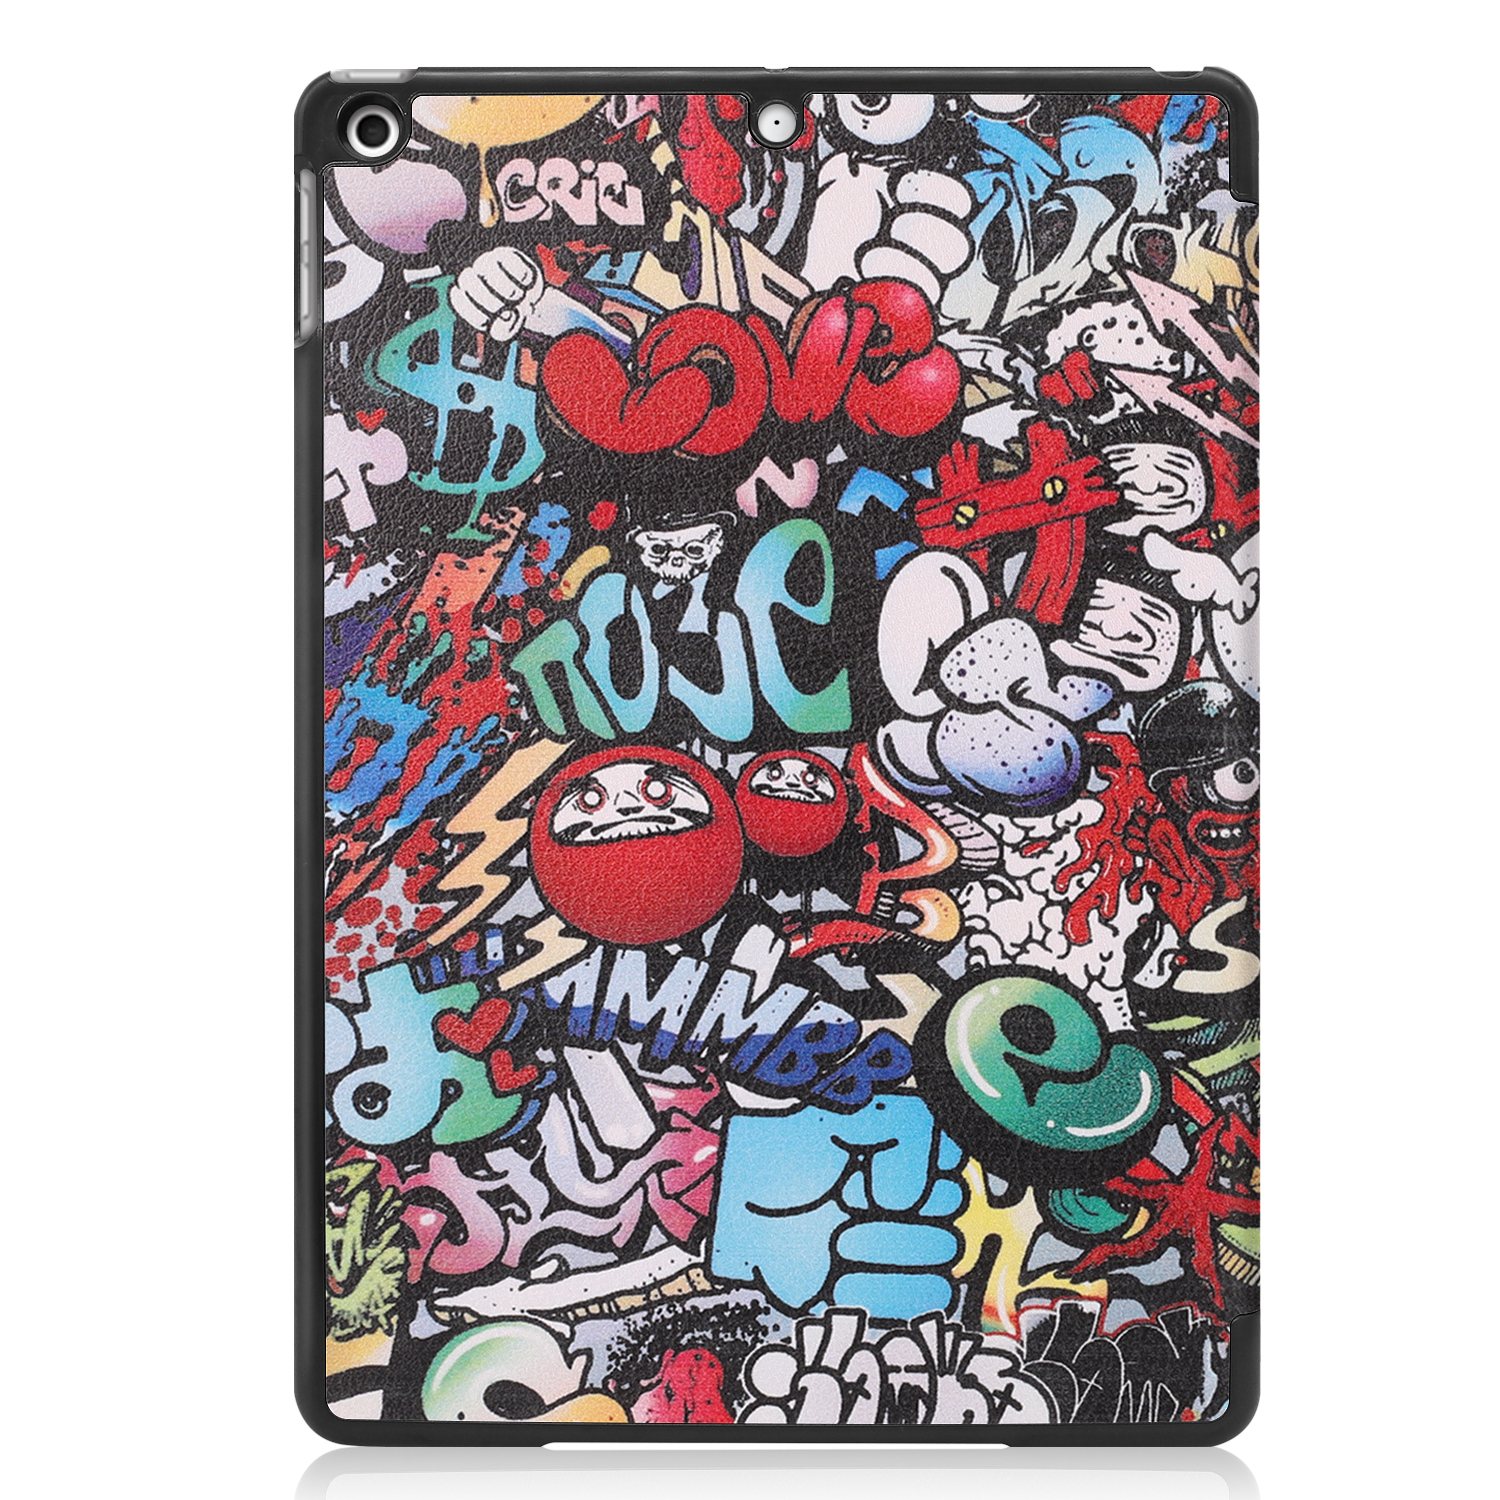 Smart-Cover Case iPad/8th/Cas Magnetic Sleep 8-8th-Generation for A2428/a2429 Apple iPad